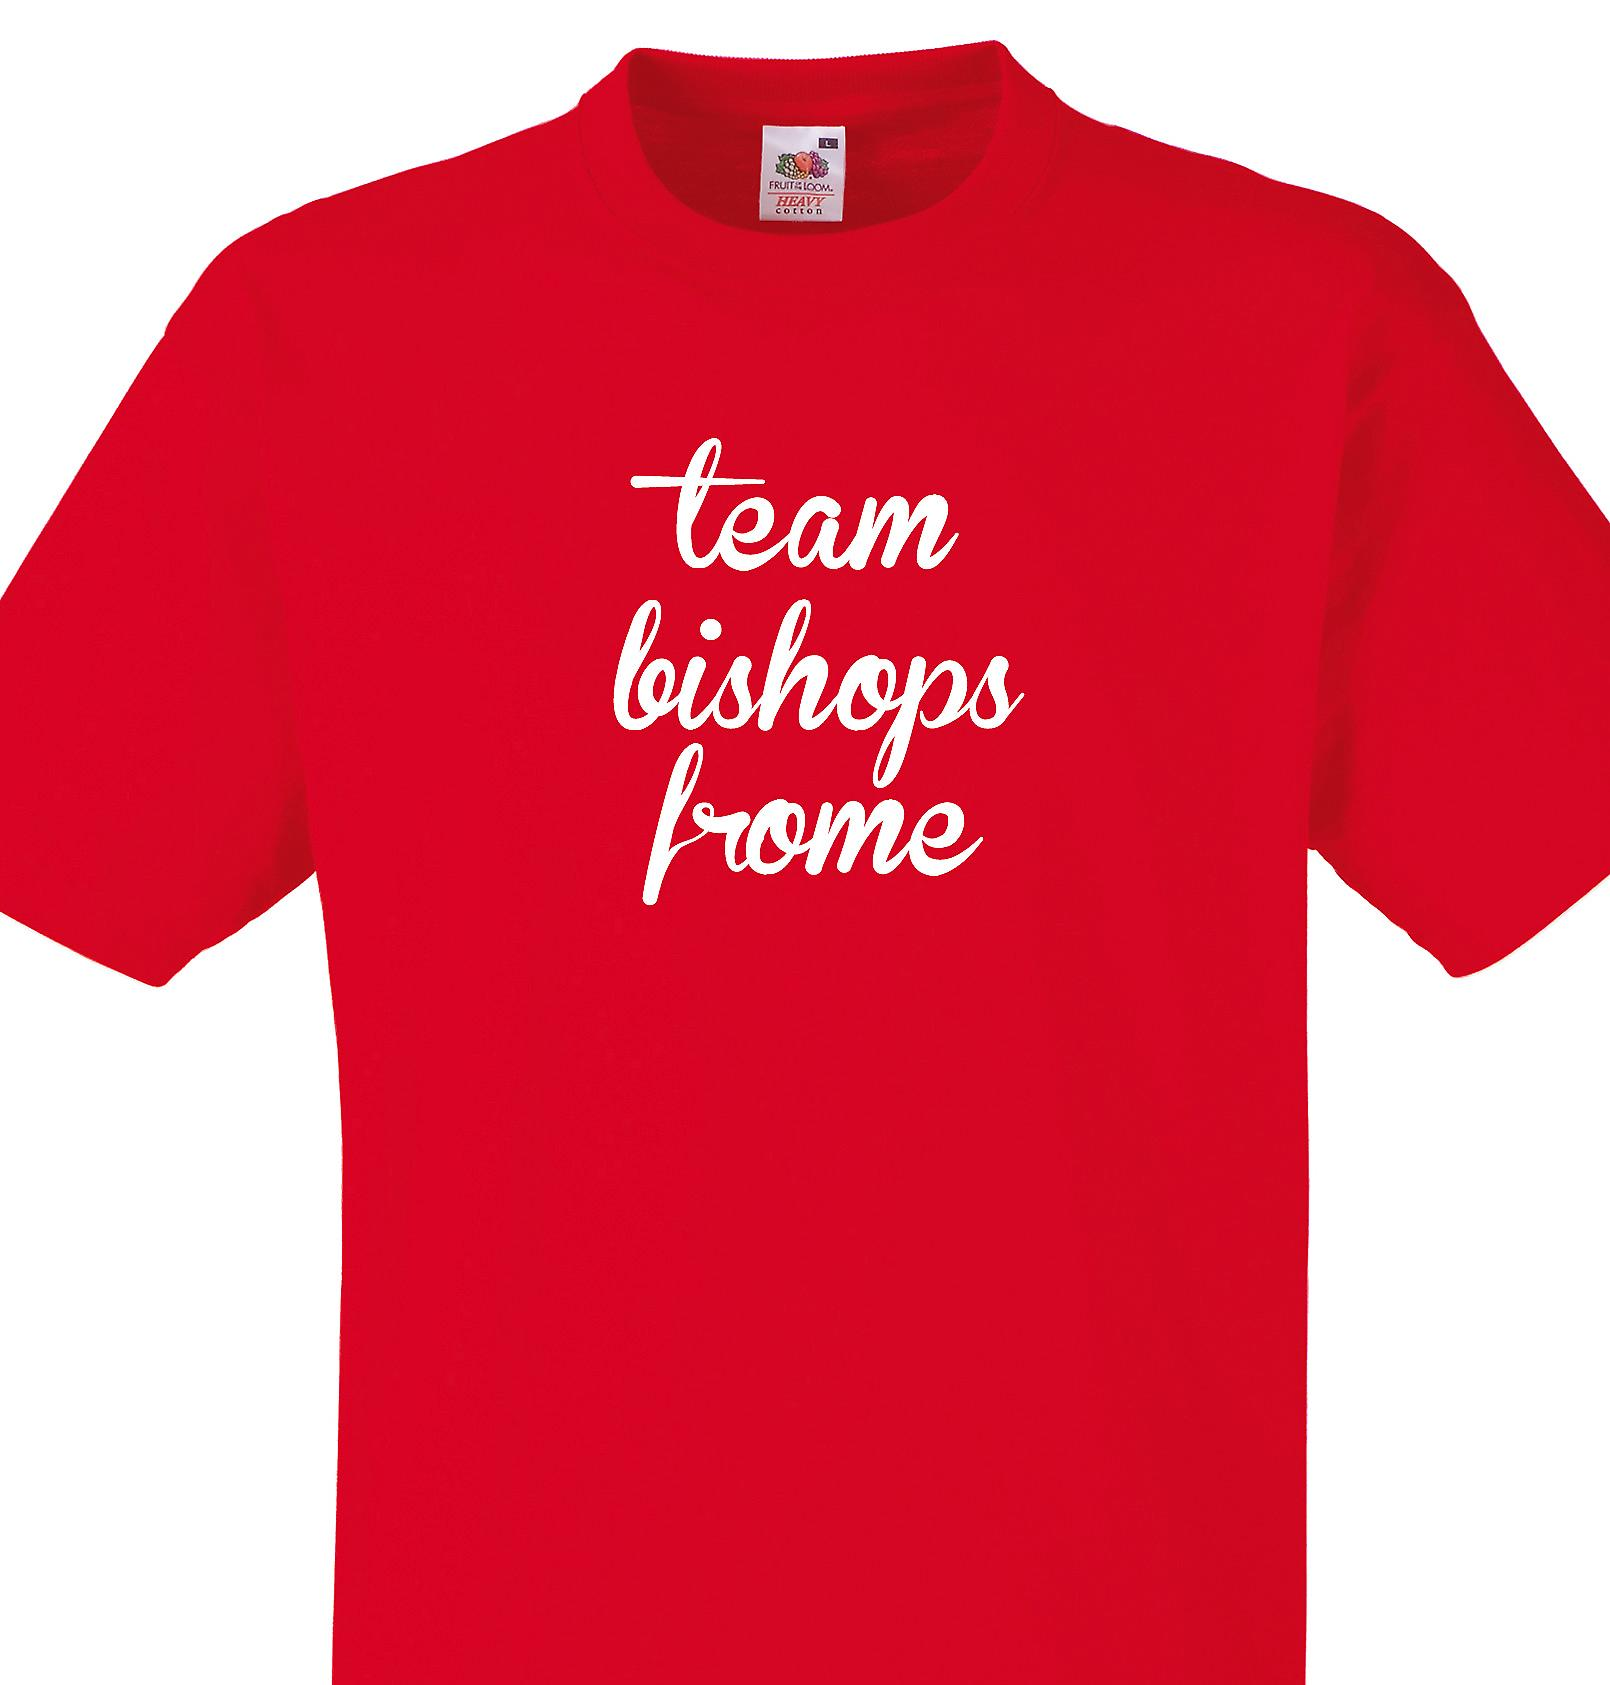 Team Bishops frome Red T shirt